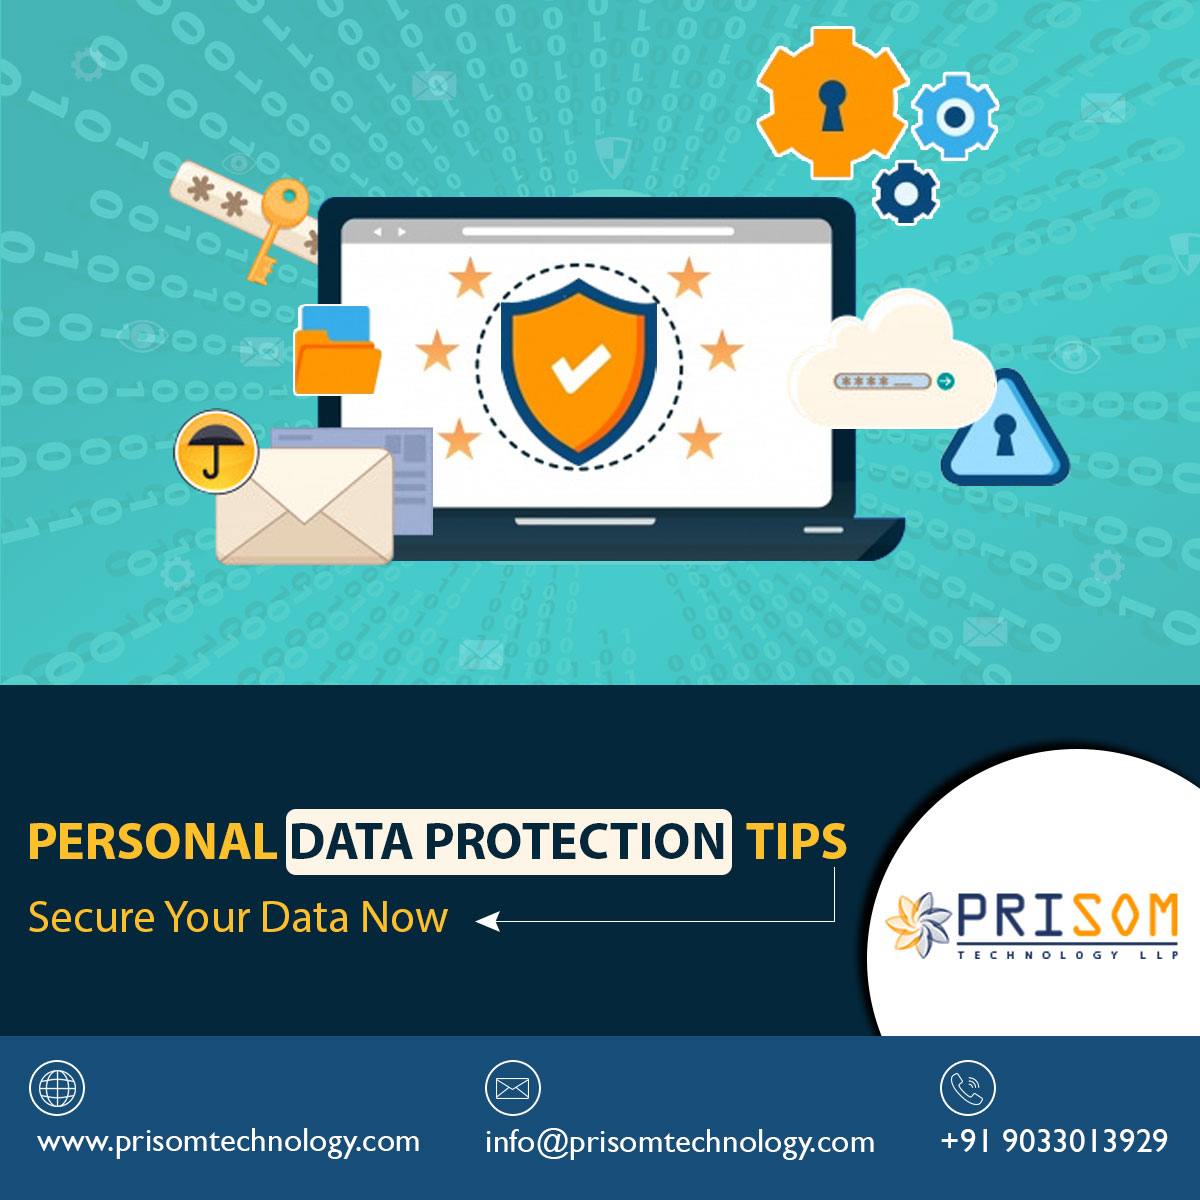 Personal Data Protection Tips – Secure Your Data Now